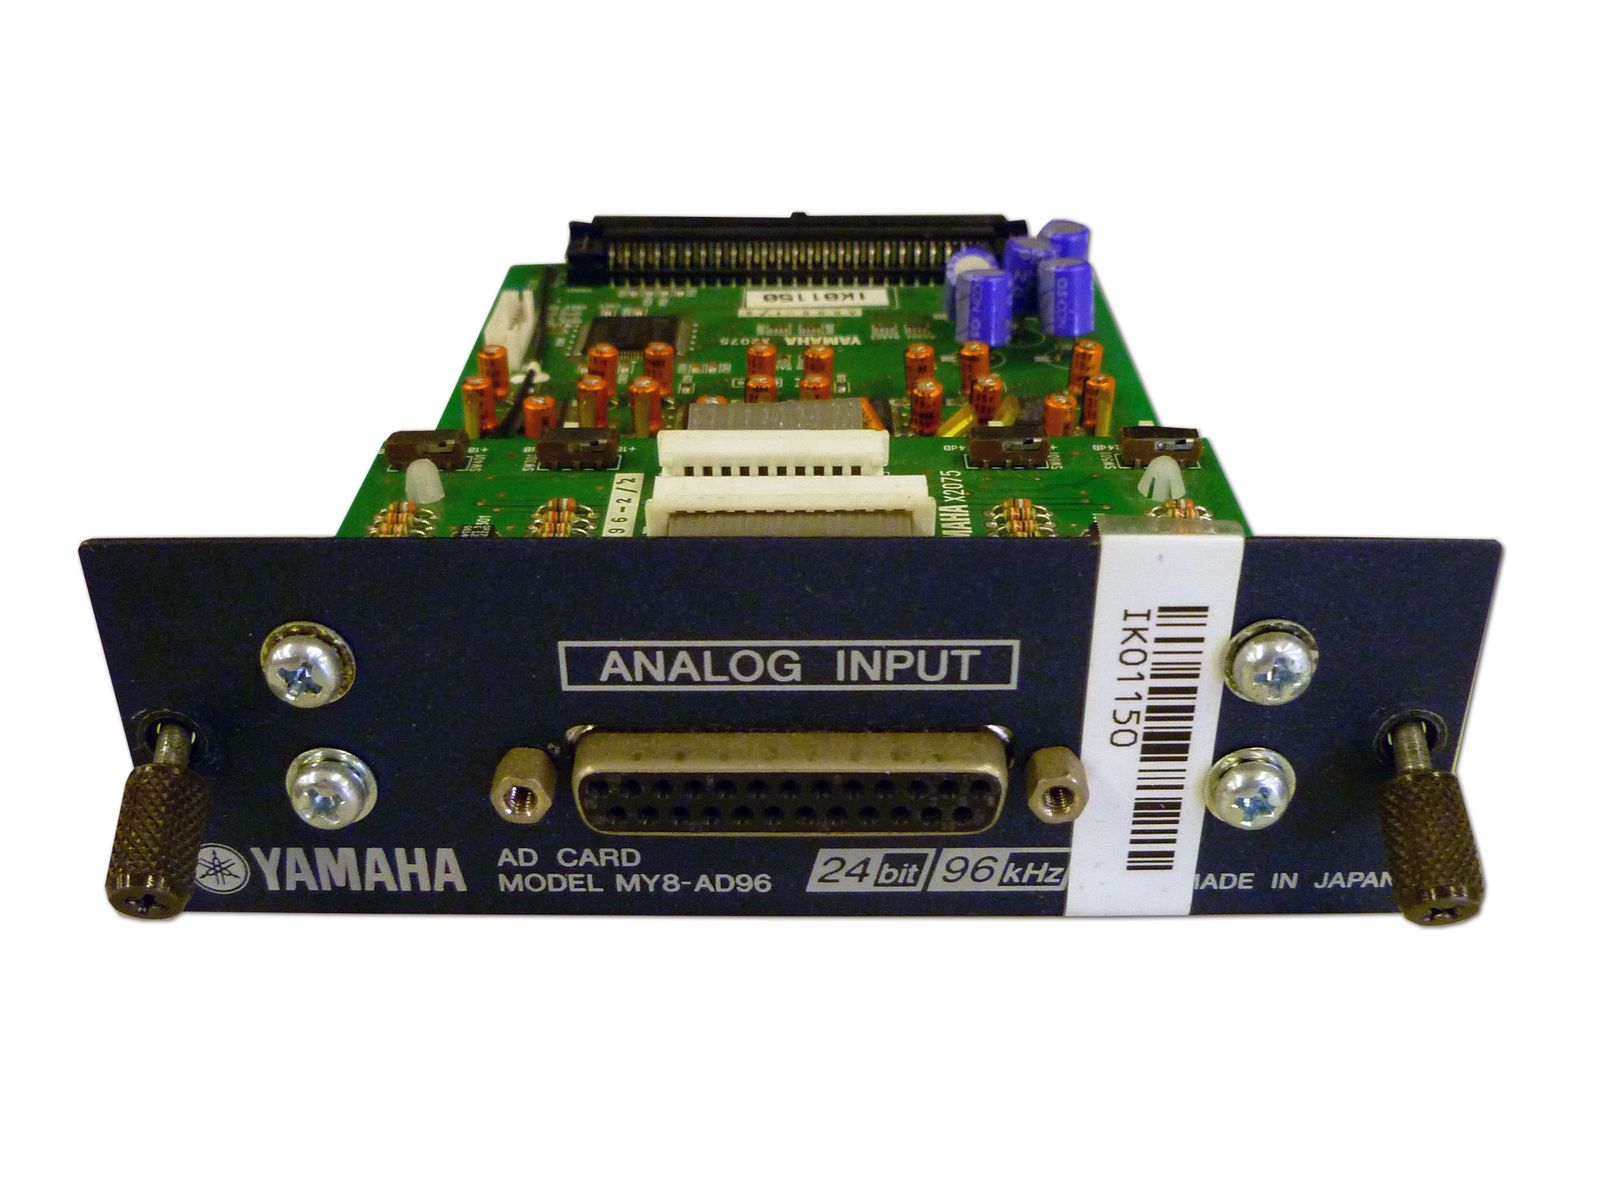 The Yamaha Model MY8-AD96 AD Input Card  is available at Hollywood Sound Systems.